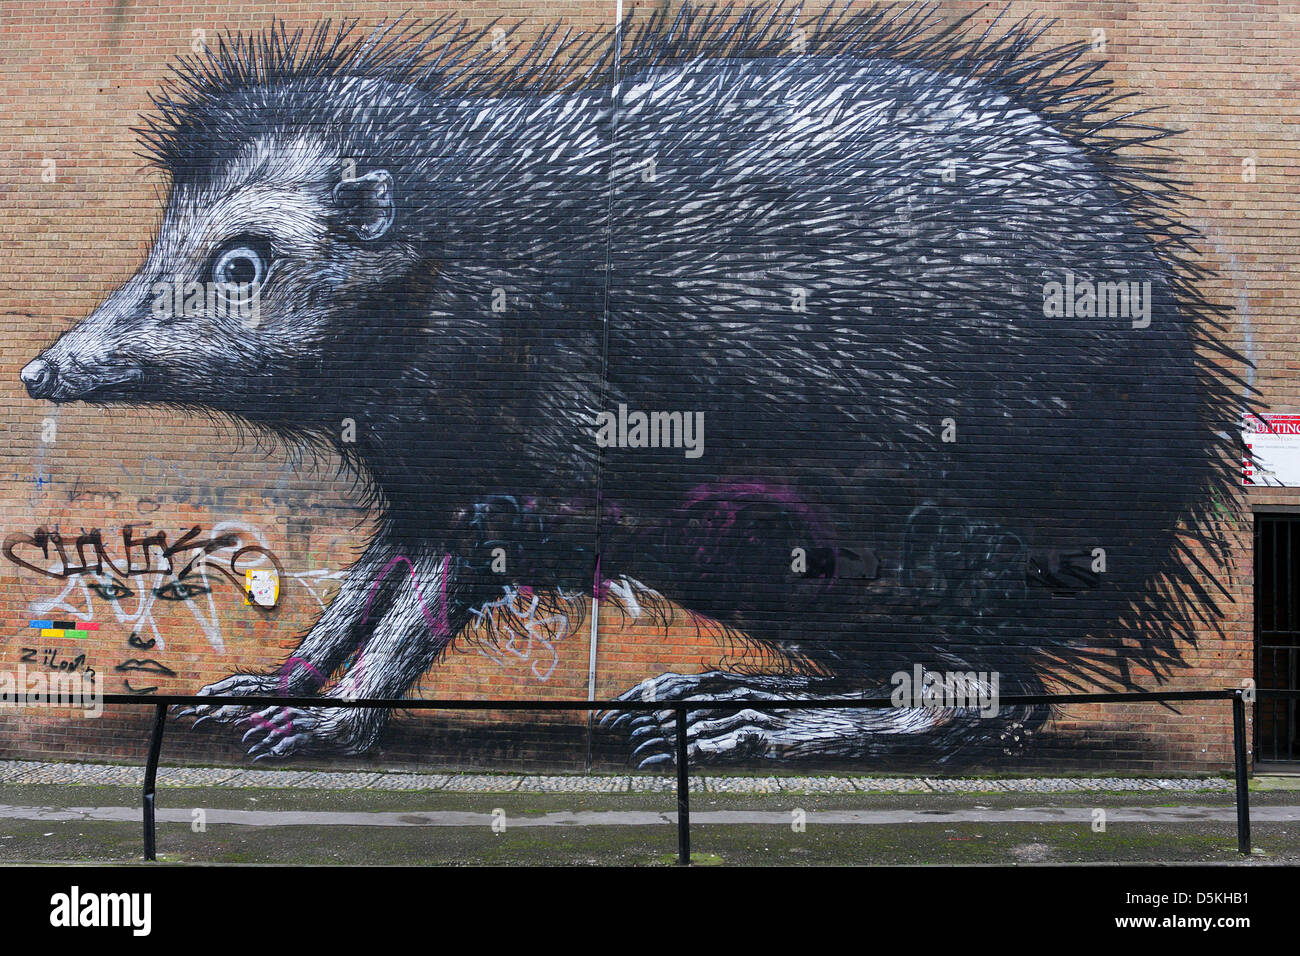 Murals and Street Art around Londons' Shoreditch District. - Stock Image